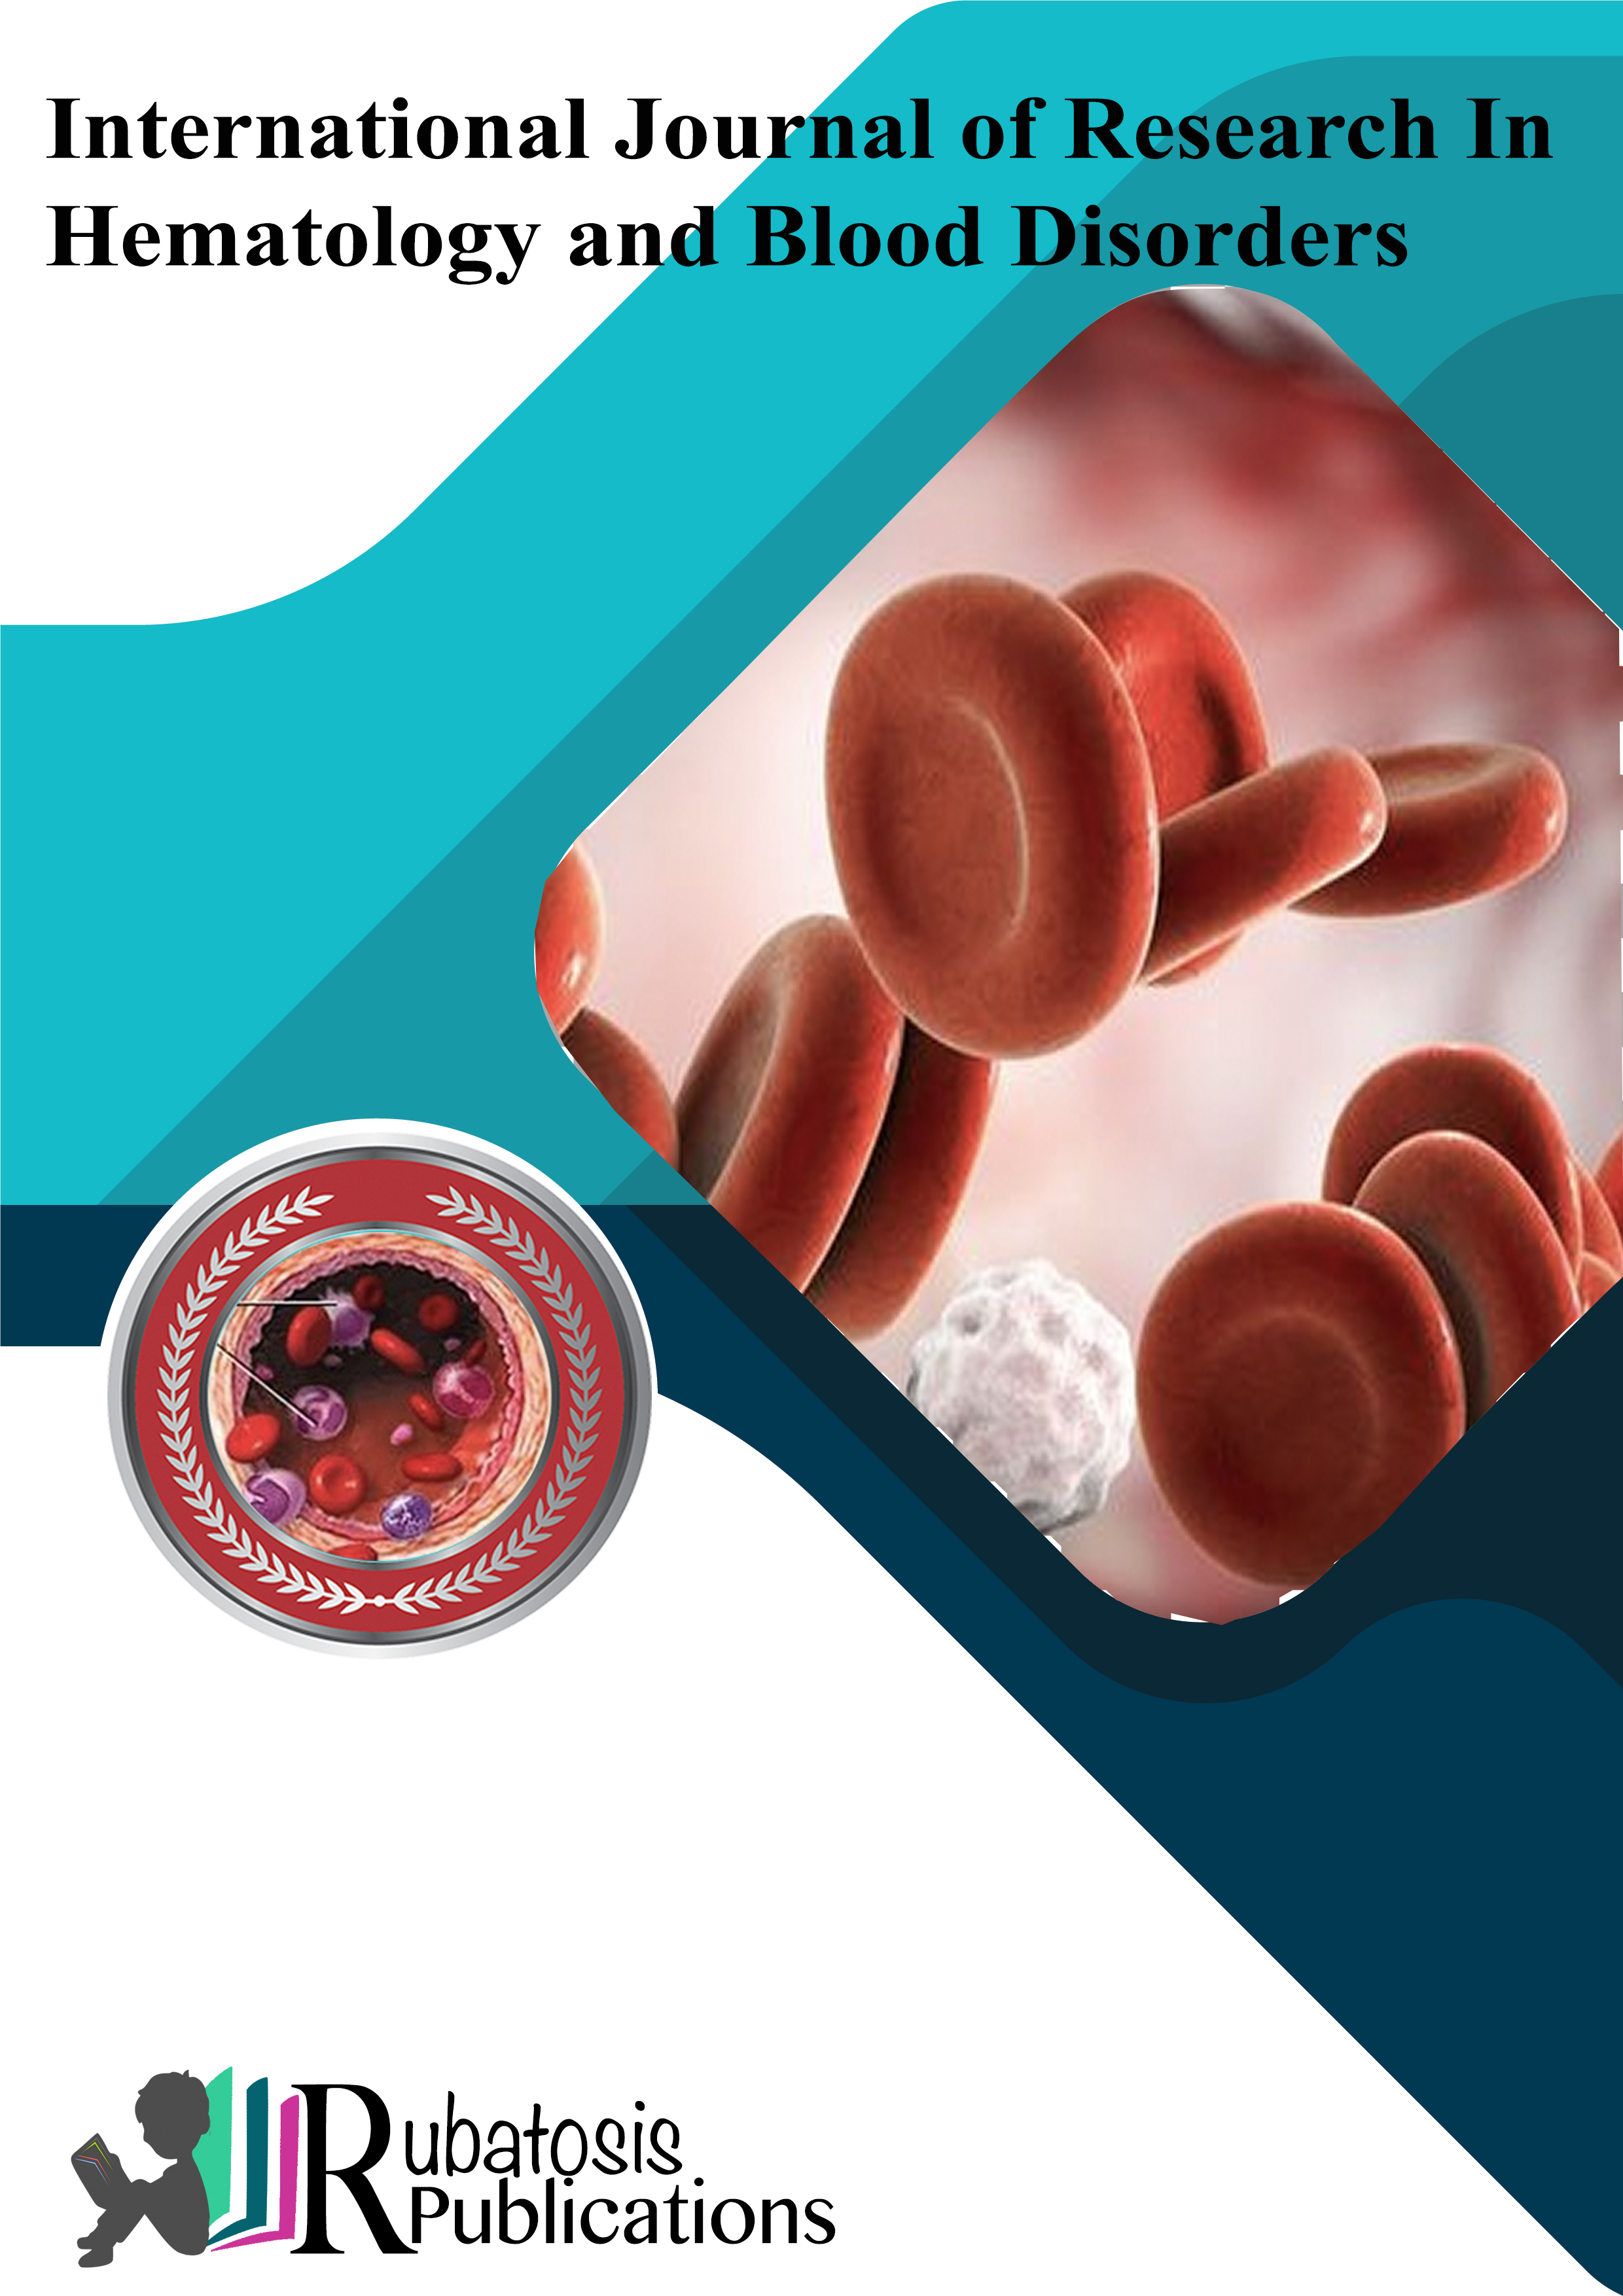 International Journal of Research in Hematology and Blood Disorders